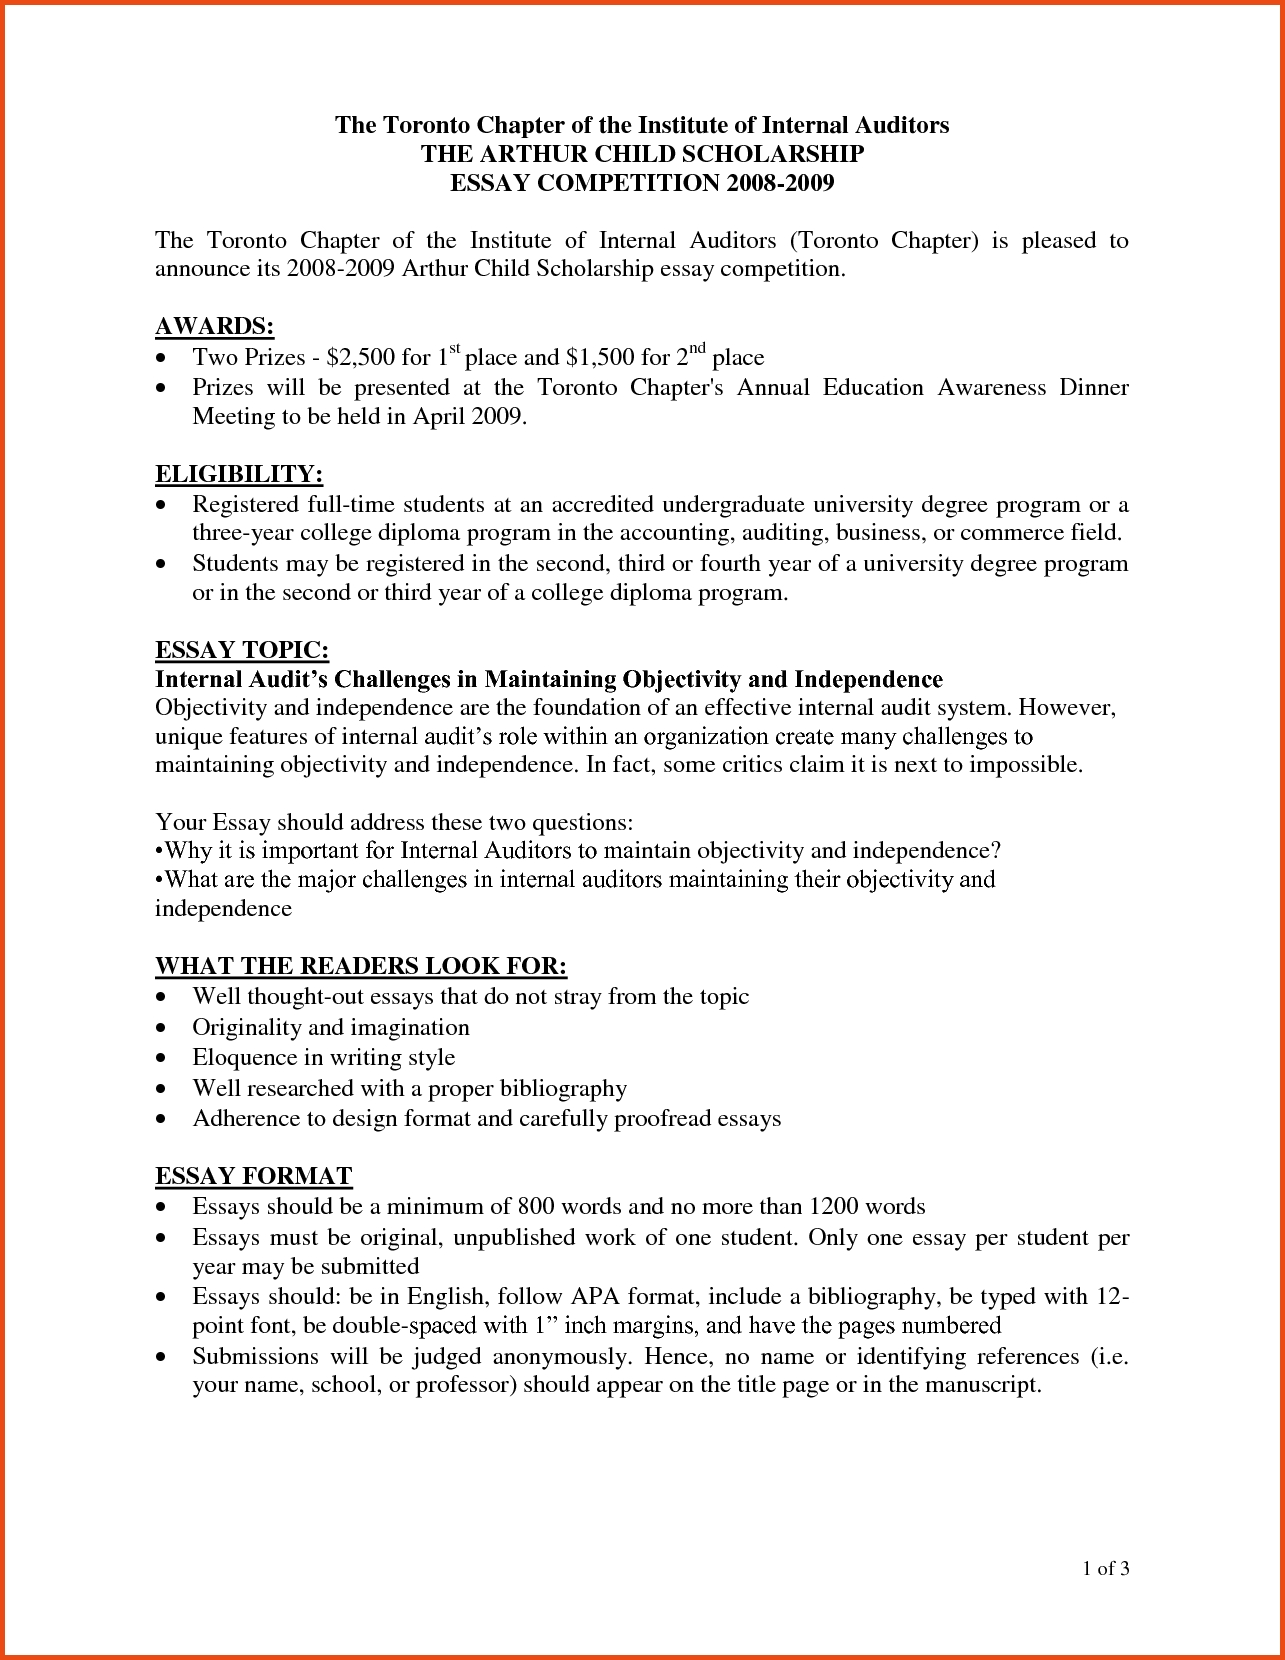 Essay Format With Subheadings